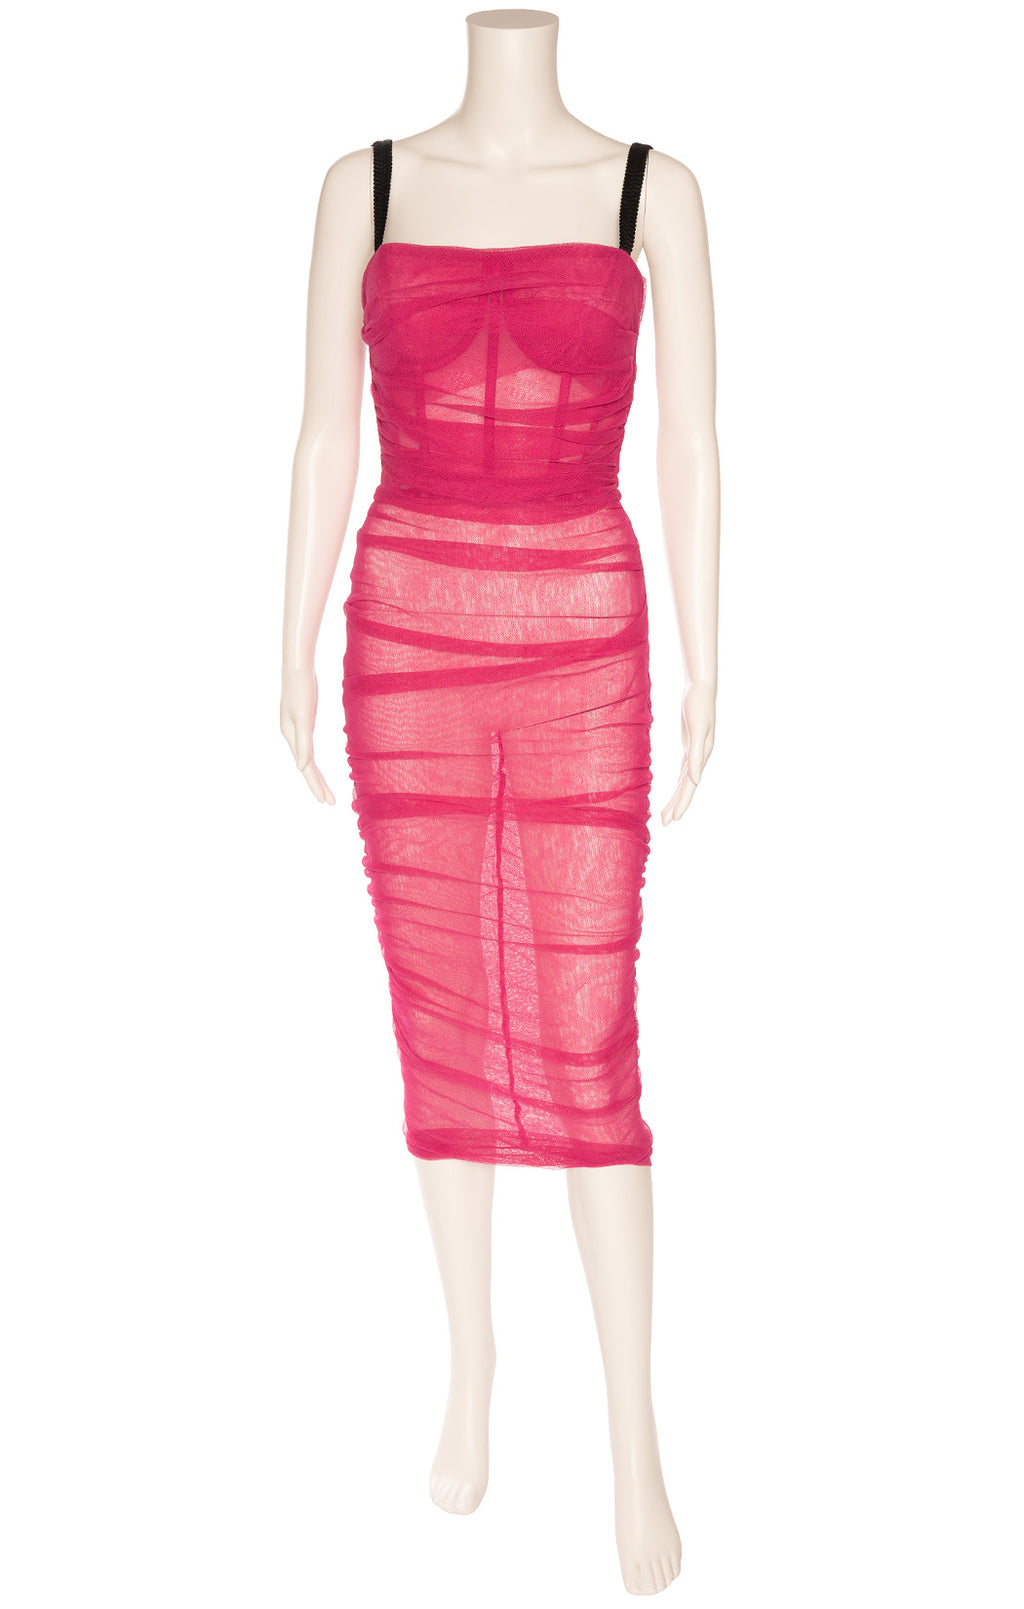 Pink rushed midi dress with underwire bra, black straps, back zipper tulle like net somewhat sheer dress